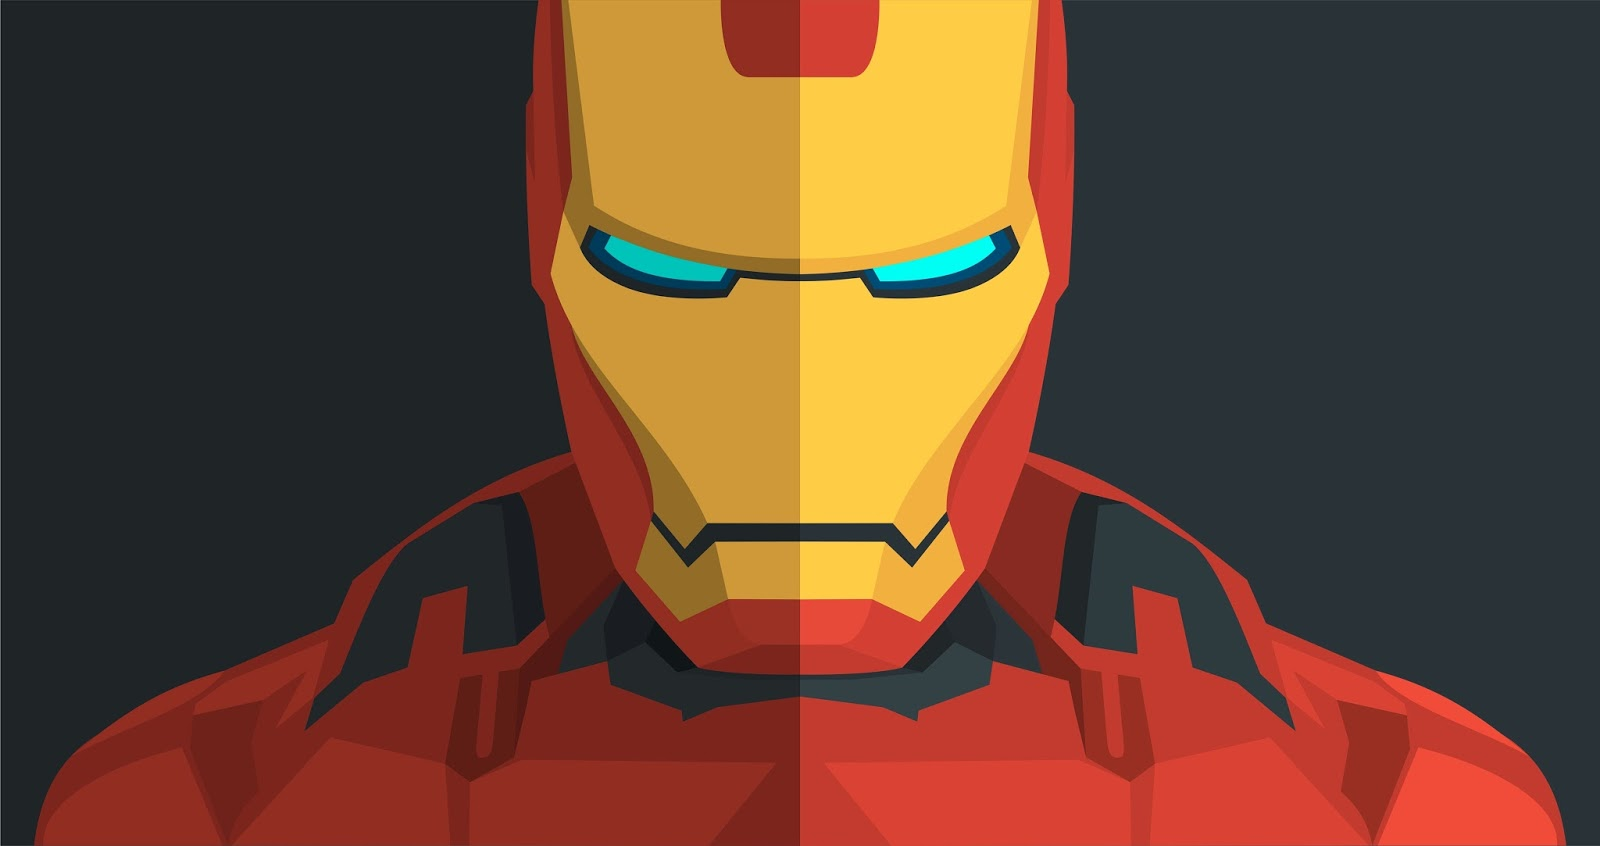 Iron Man Vector Graphic Wallpaper 5k Resolution